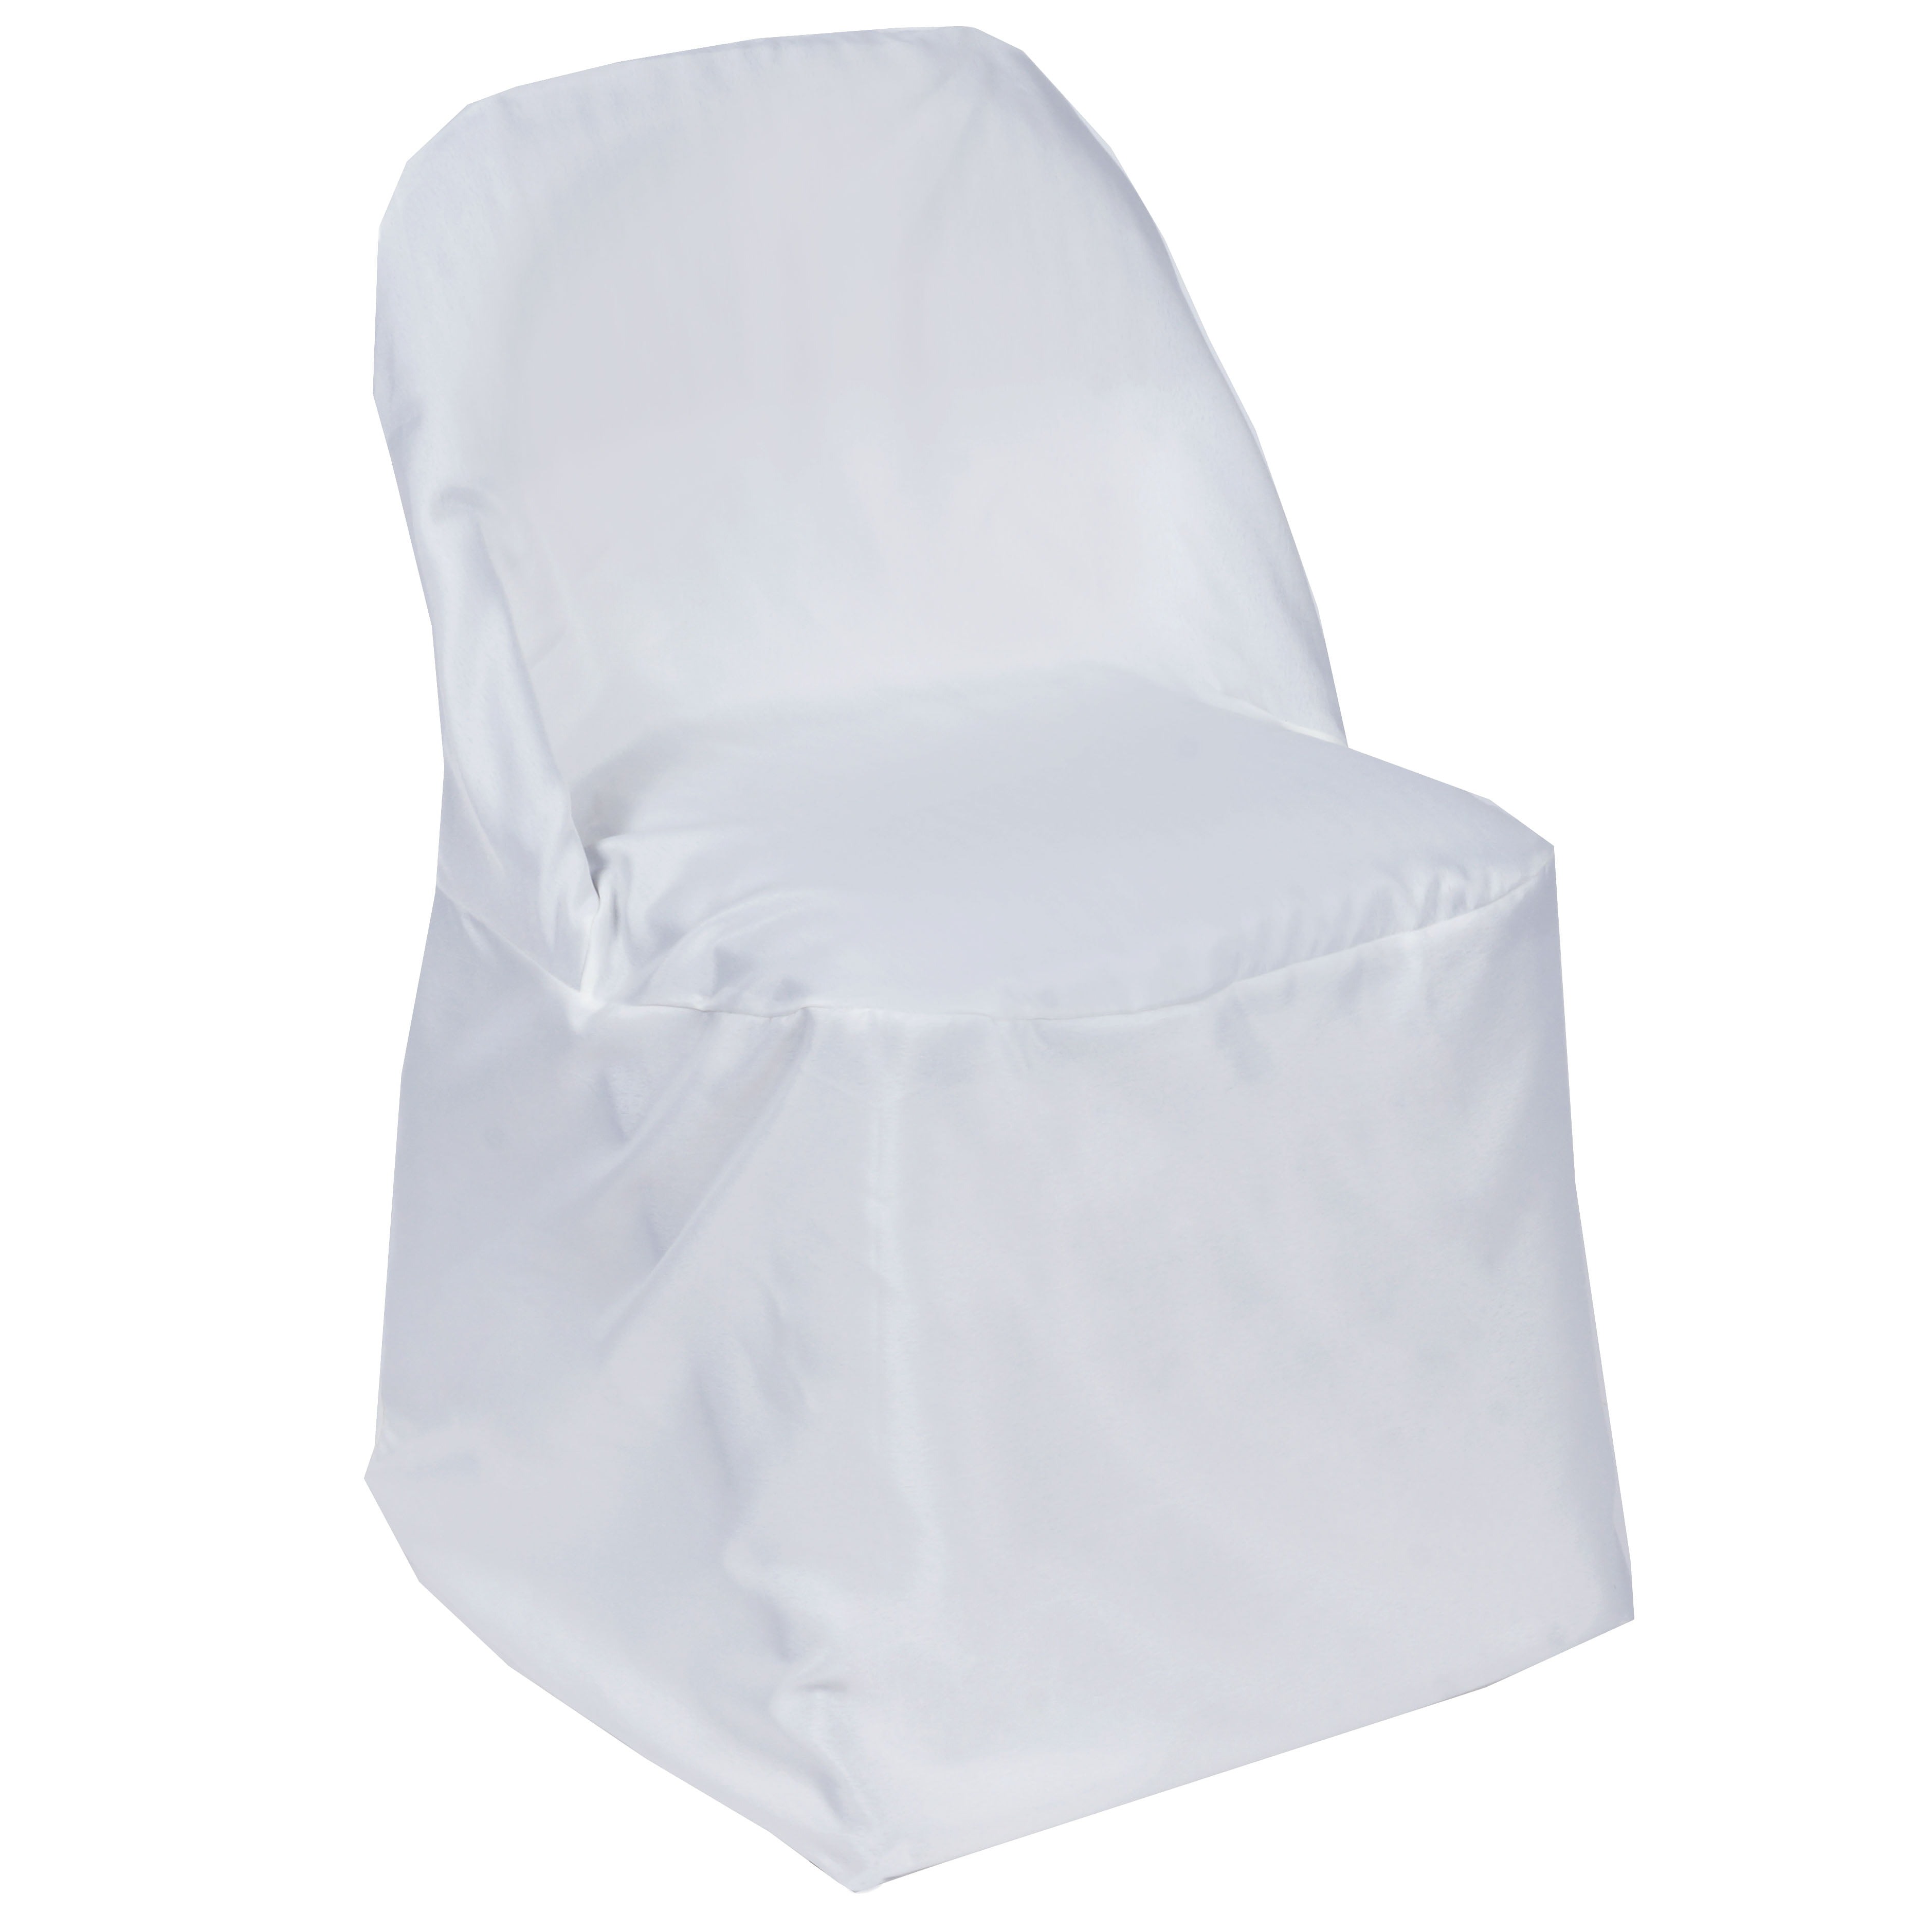 Balsacircle Folding Round Polyester Chair Covers Slipcovers For Party Wedding Reception Decorations Walmart Com Walmart Com